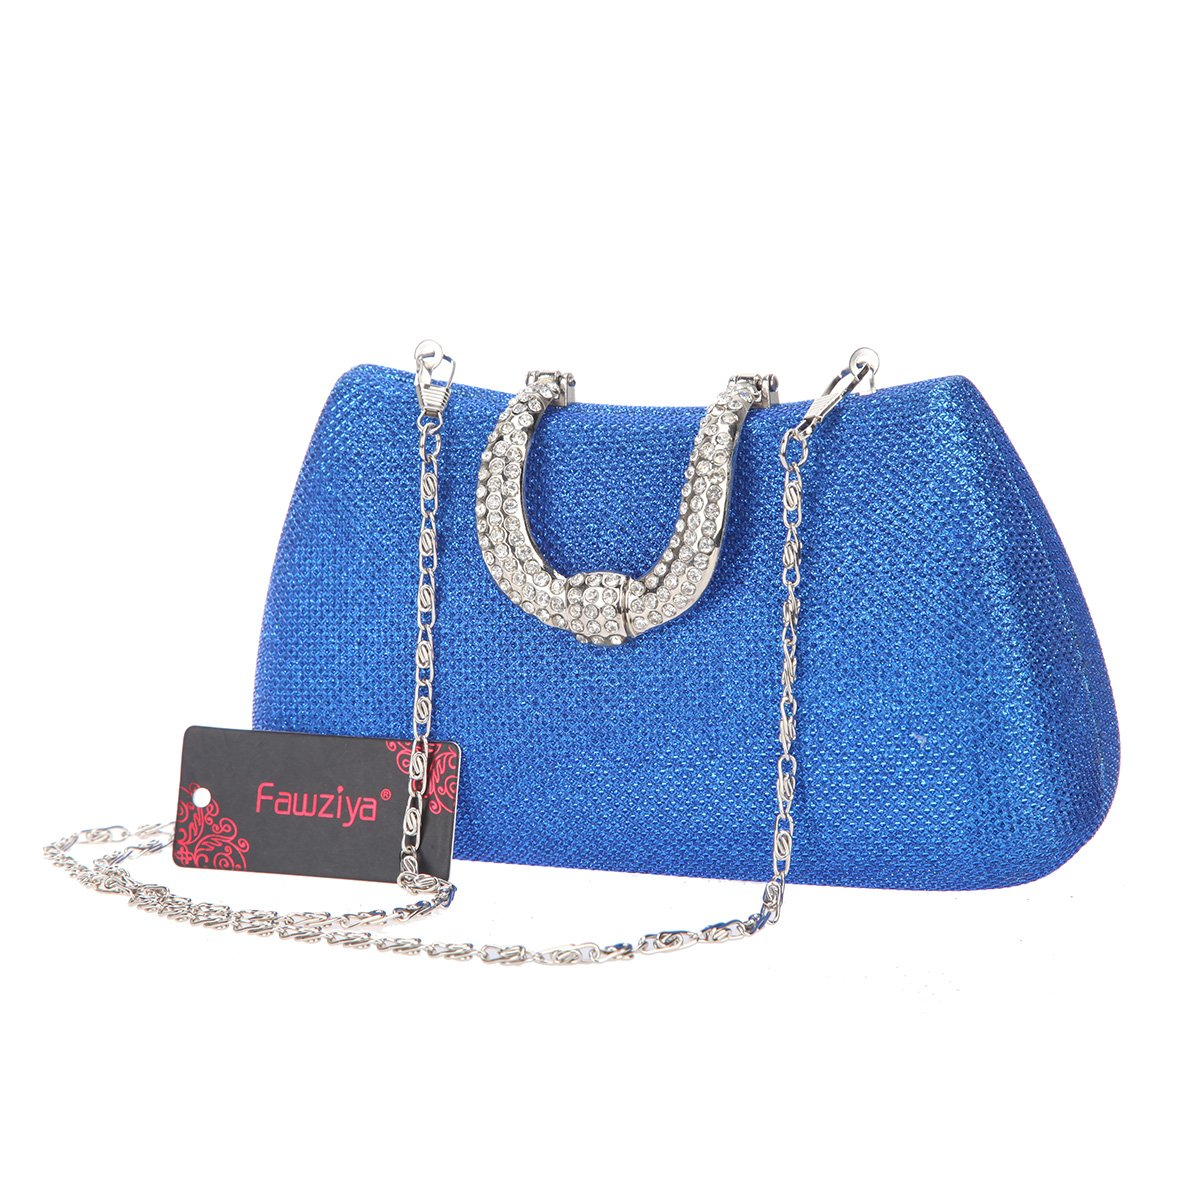 82cc7e1db1 Fawziya Glitter Lnitials Clutch Purses For Women Hard Case Evening bag-Blue   Amazon.com.au  Fashion